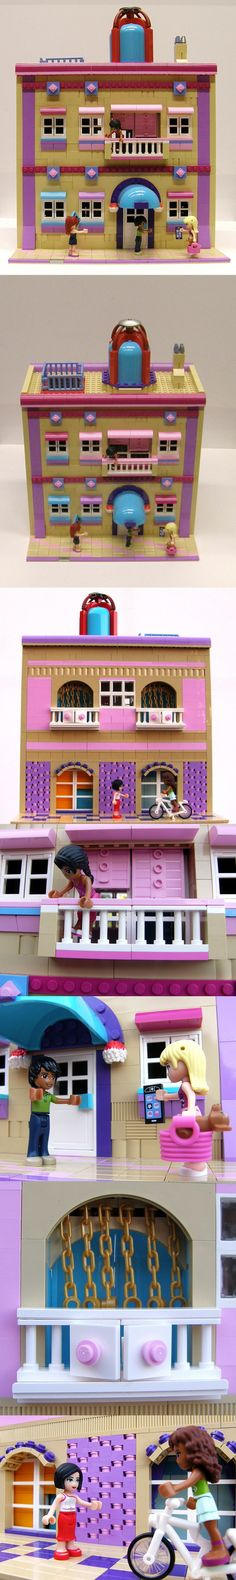 Heartlake Hotel #LEGO #Friends #Hotel #Heartlake